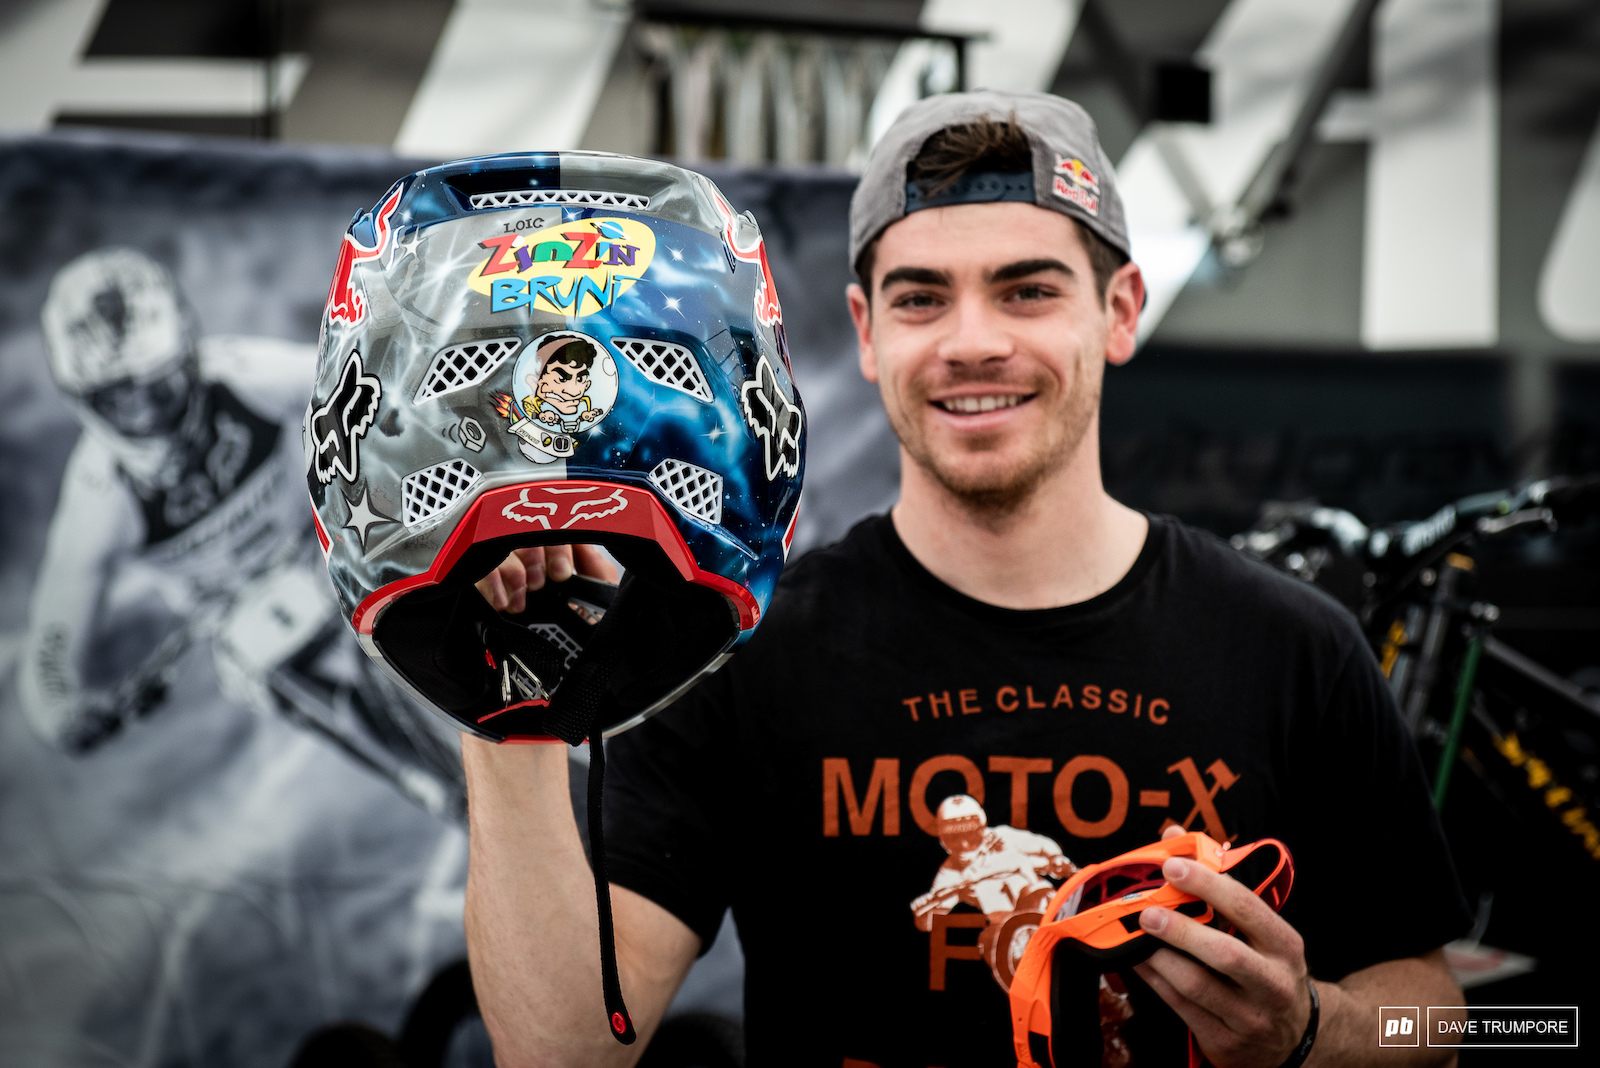 A new season and a new custom painted helmet for Loic Bruni.